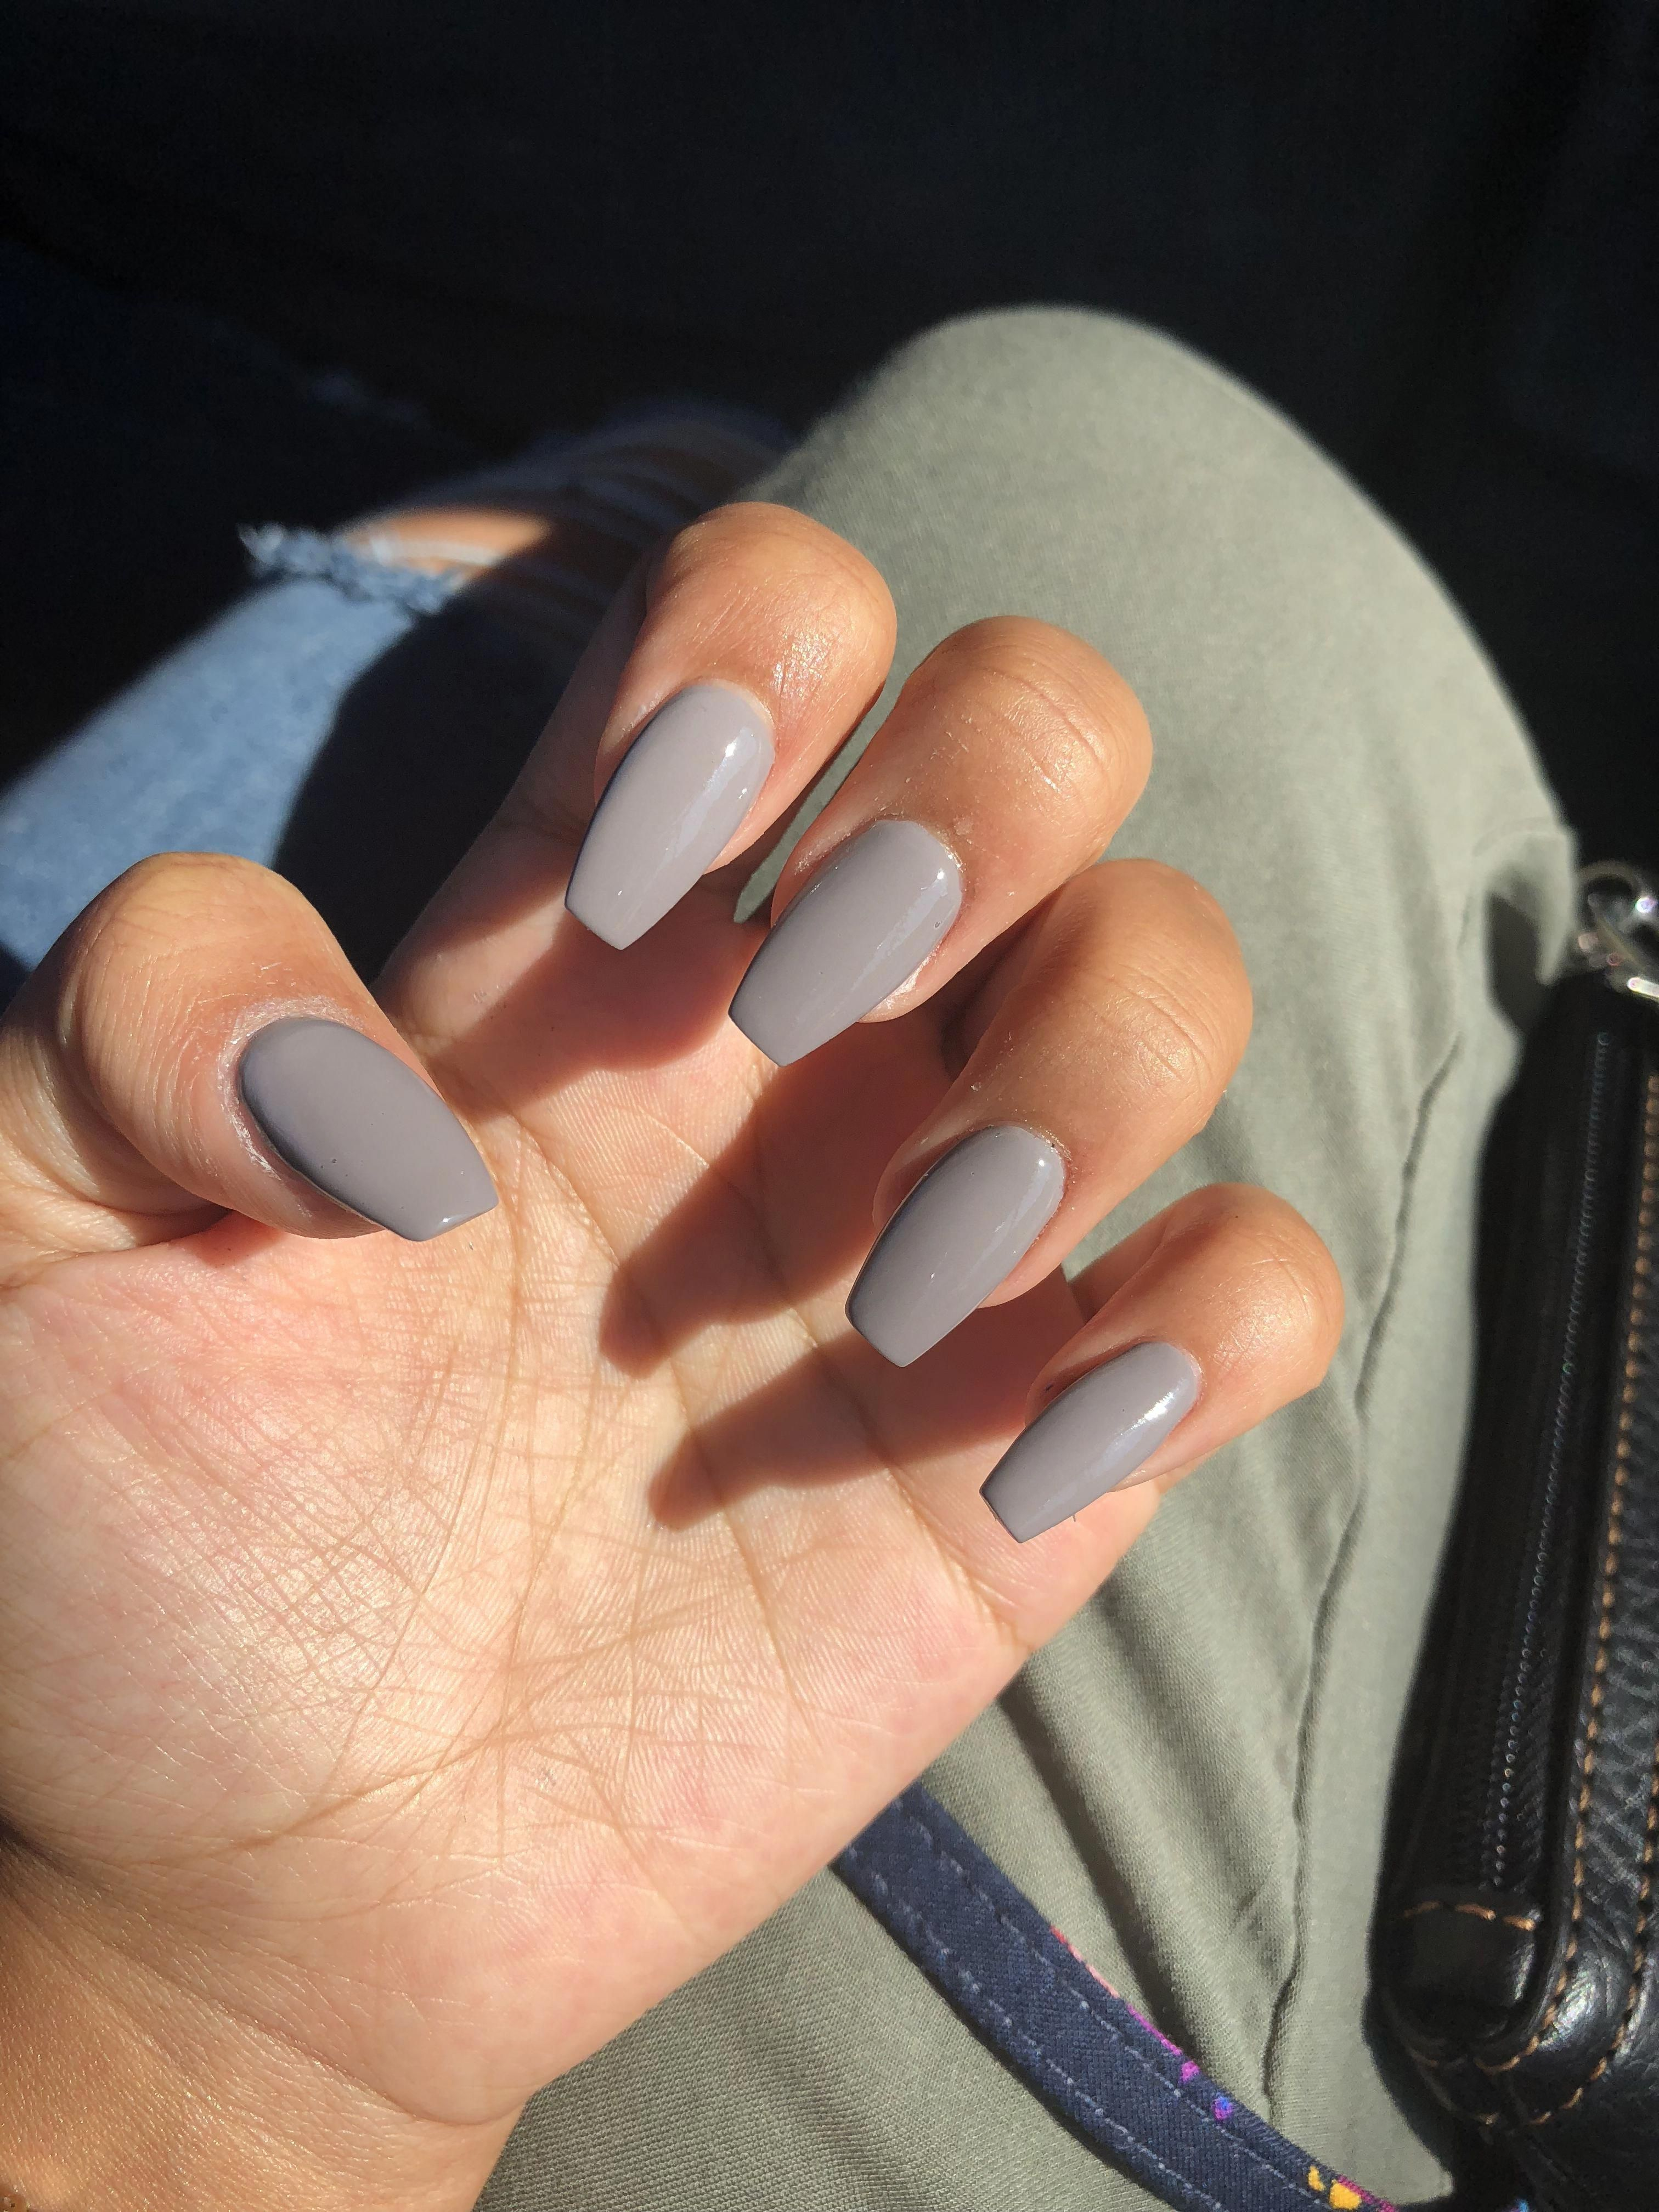 Amazing Short Acrylic Nails Shortacrylicnails Acrylic Nails Coffin Short Grey Acrylic Nails Best Acrylic Nails